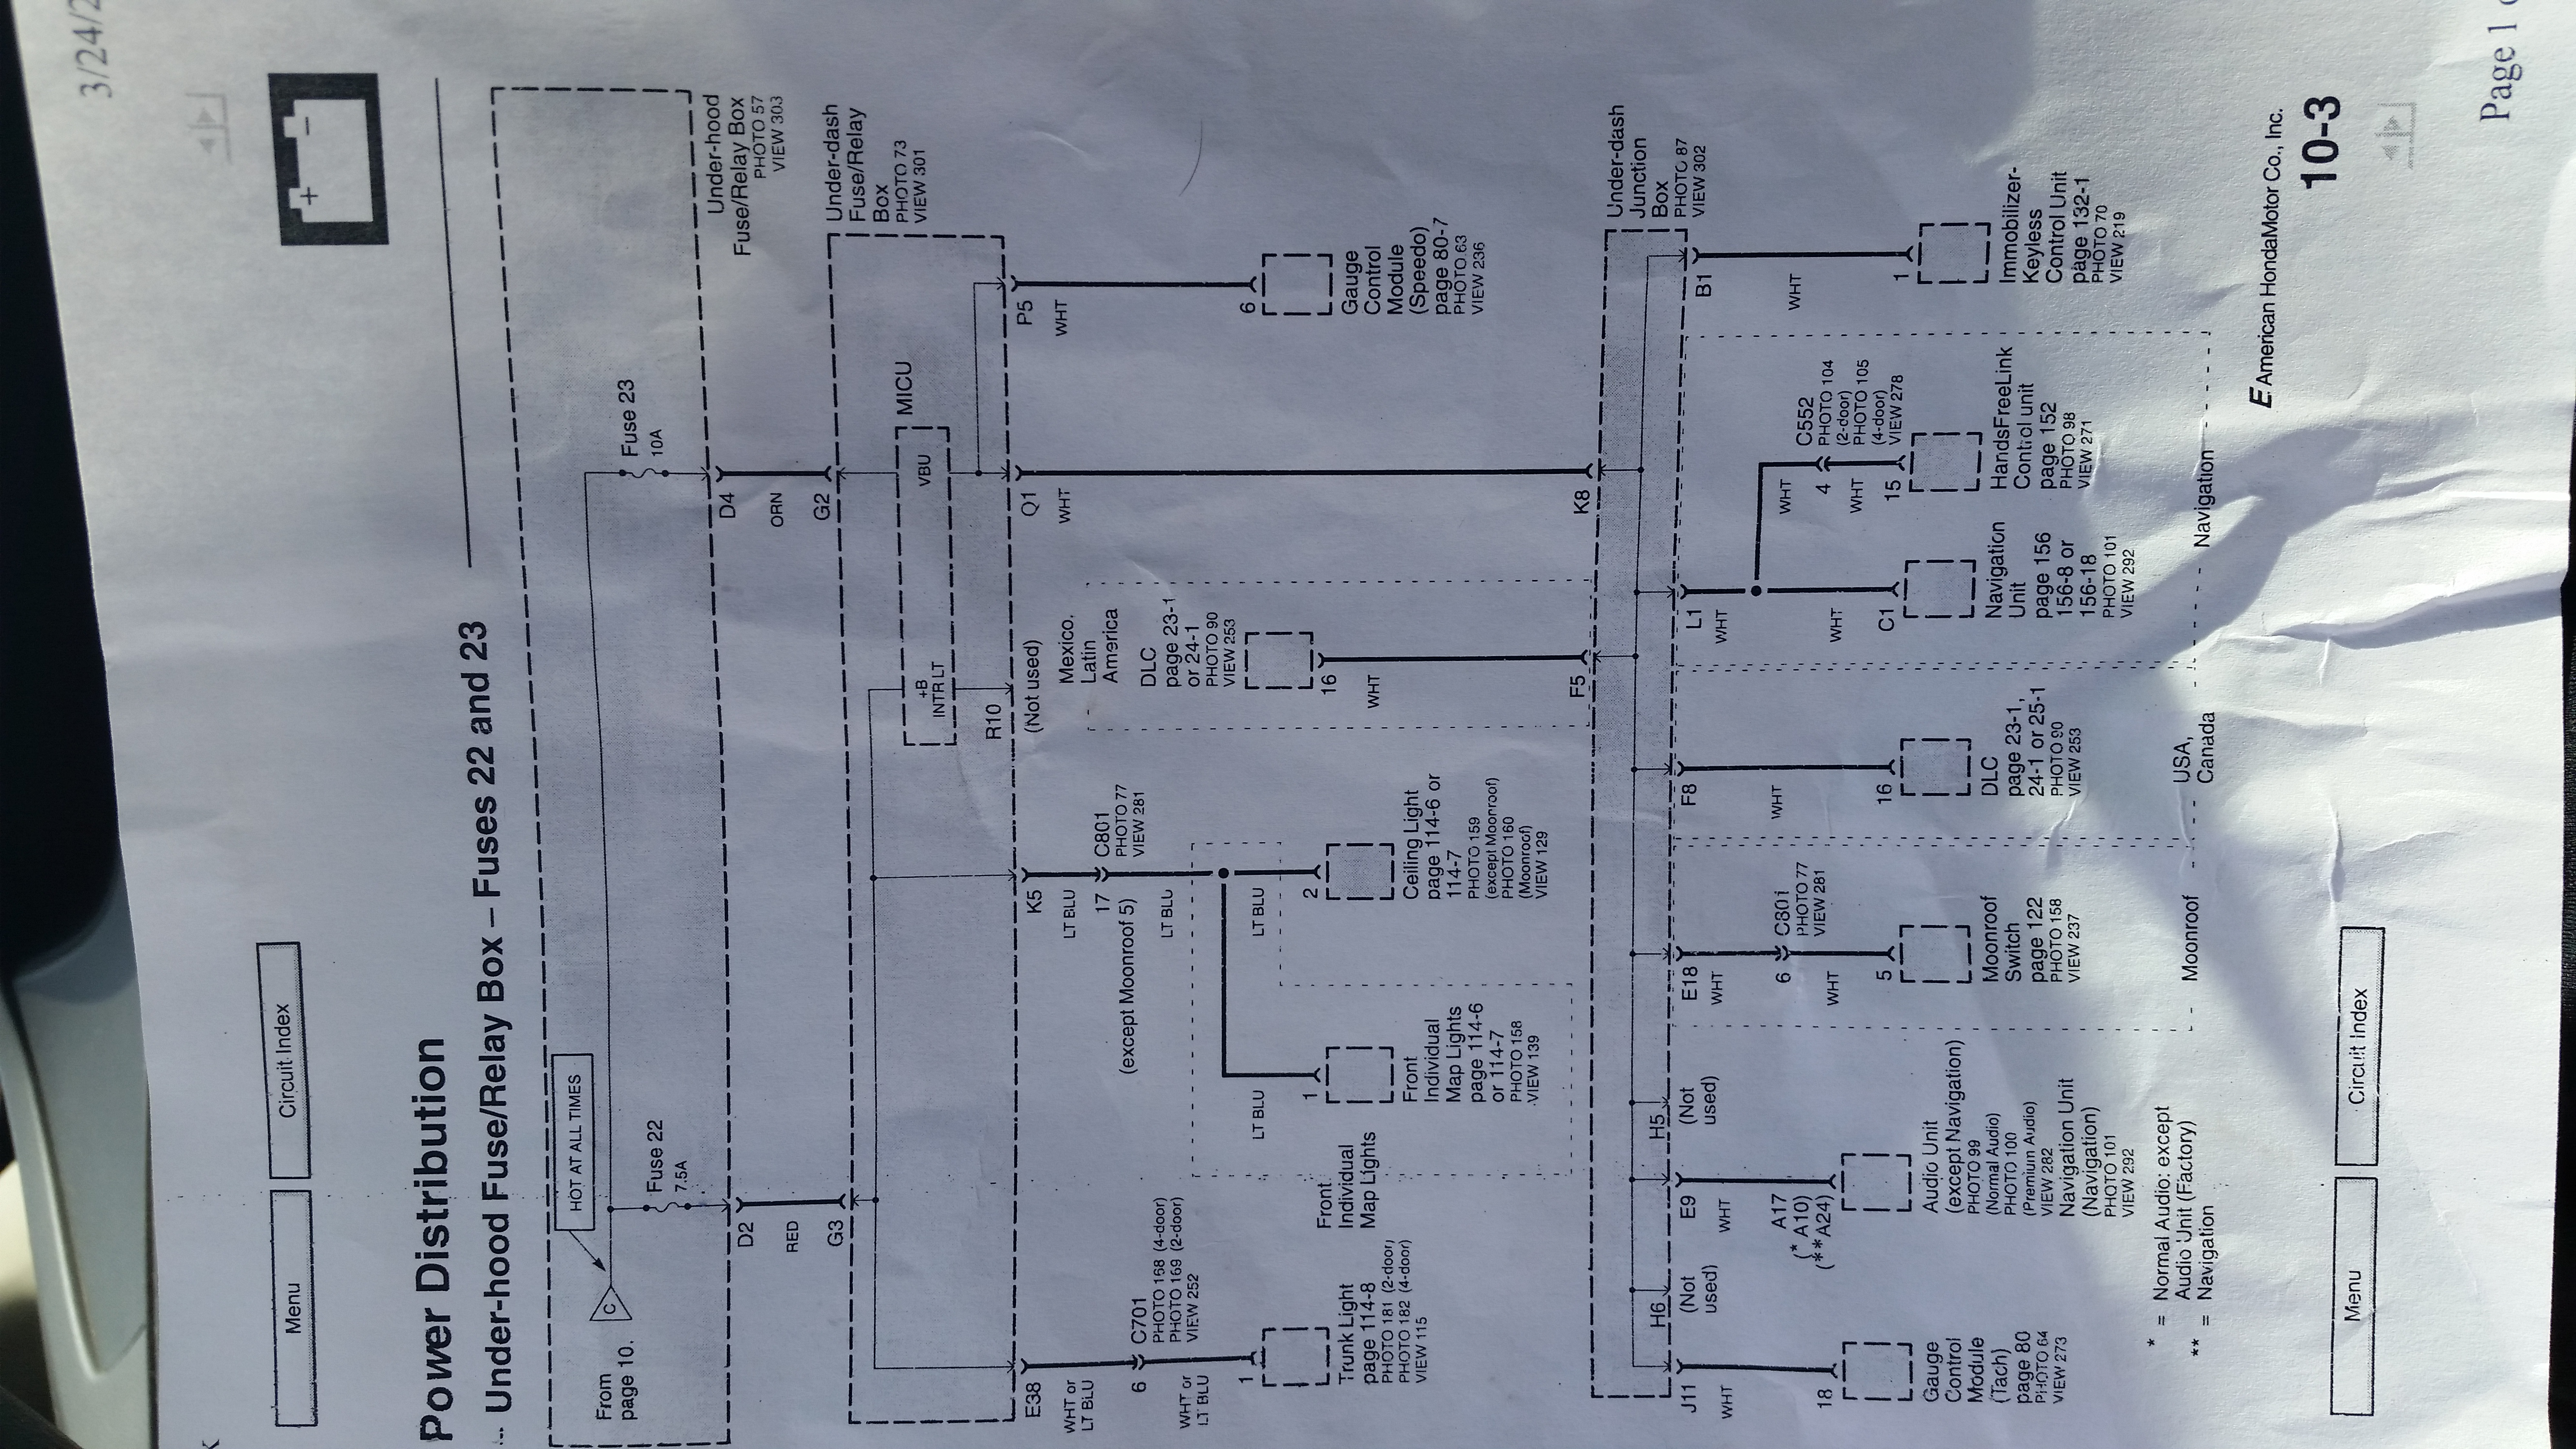 I Have A Draw That Ive Isolated To Fuse 23 In The Under Hood 2010 Honda Odyssey Wiring Diagram Backup Acc 1459023317818